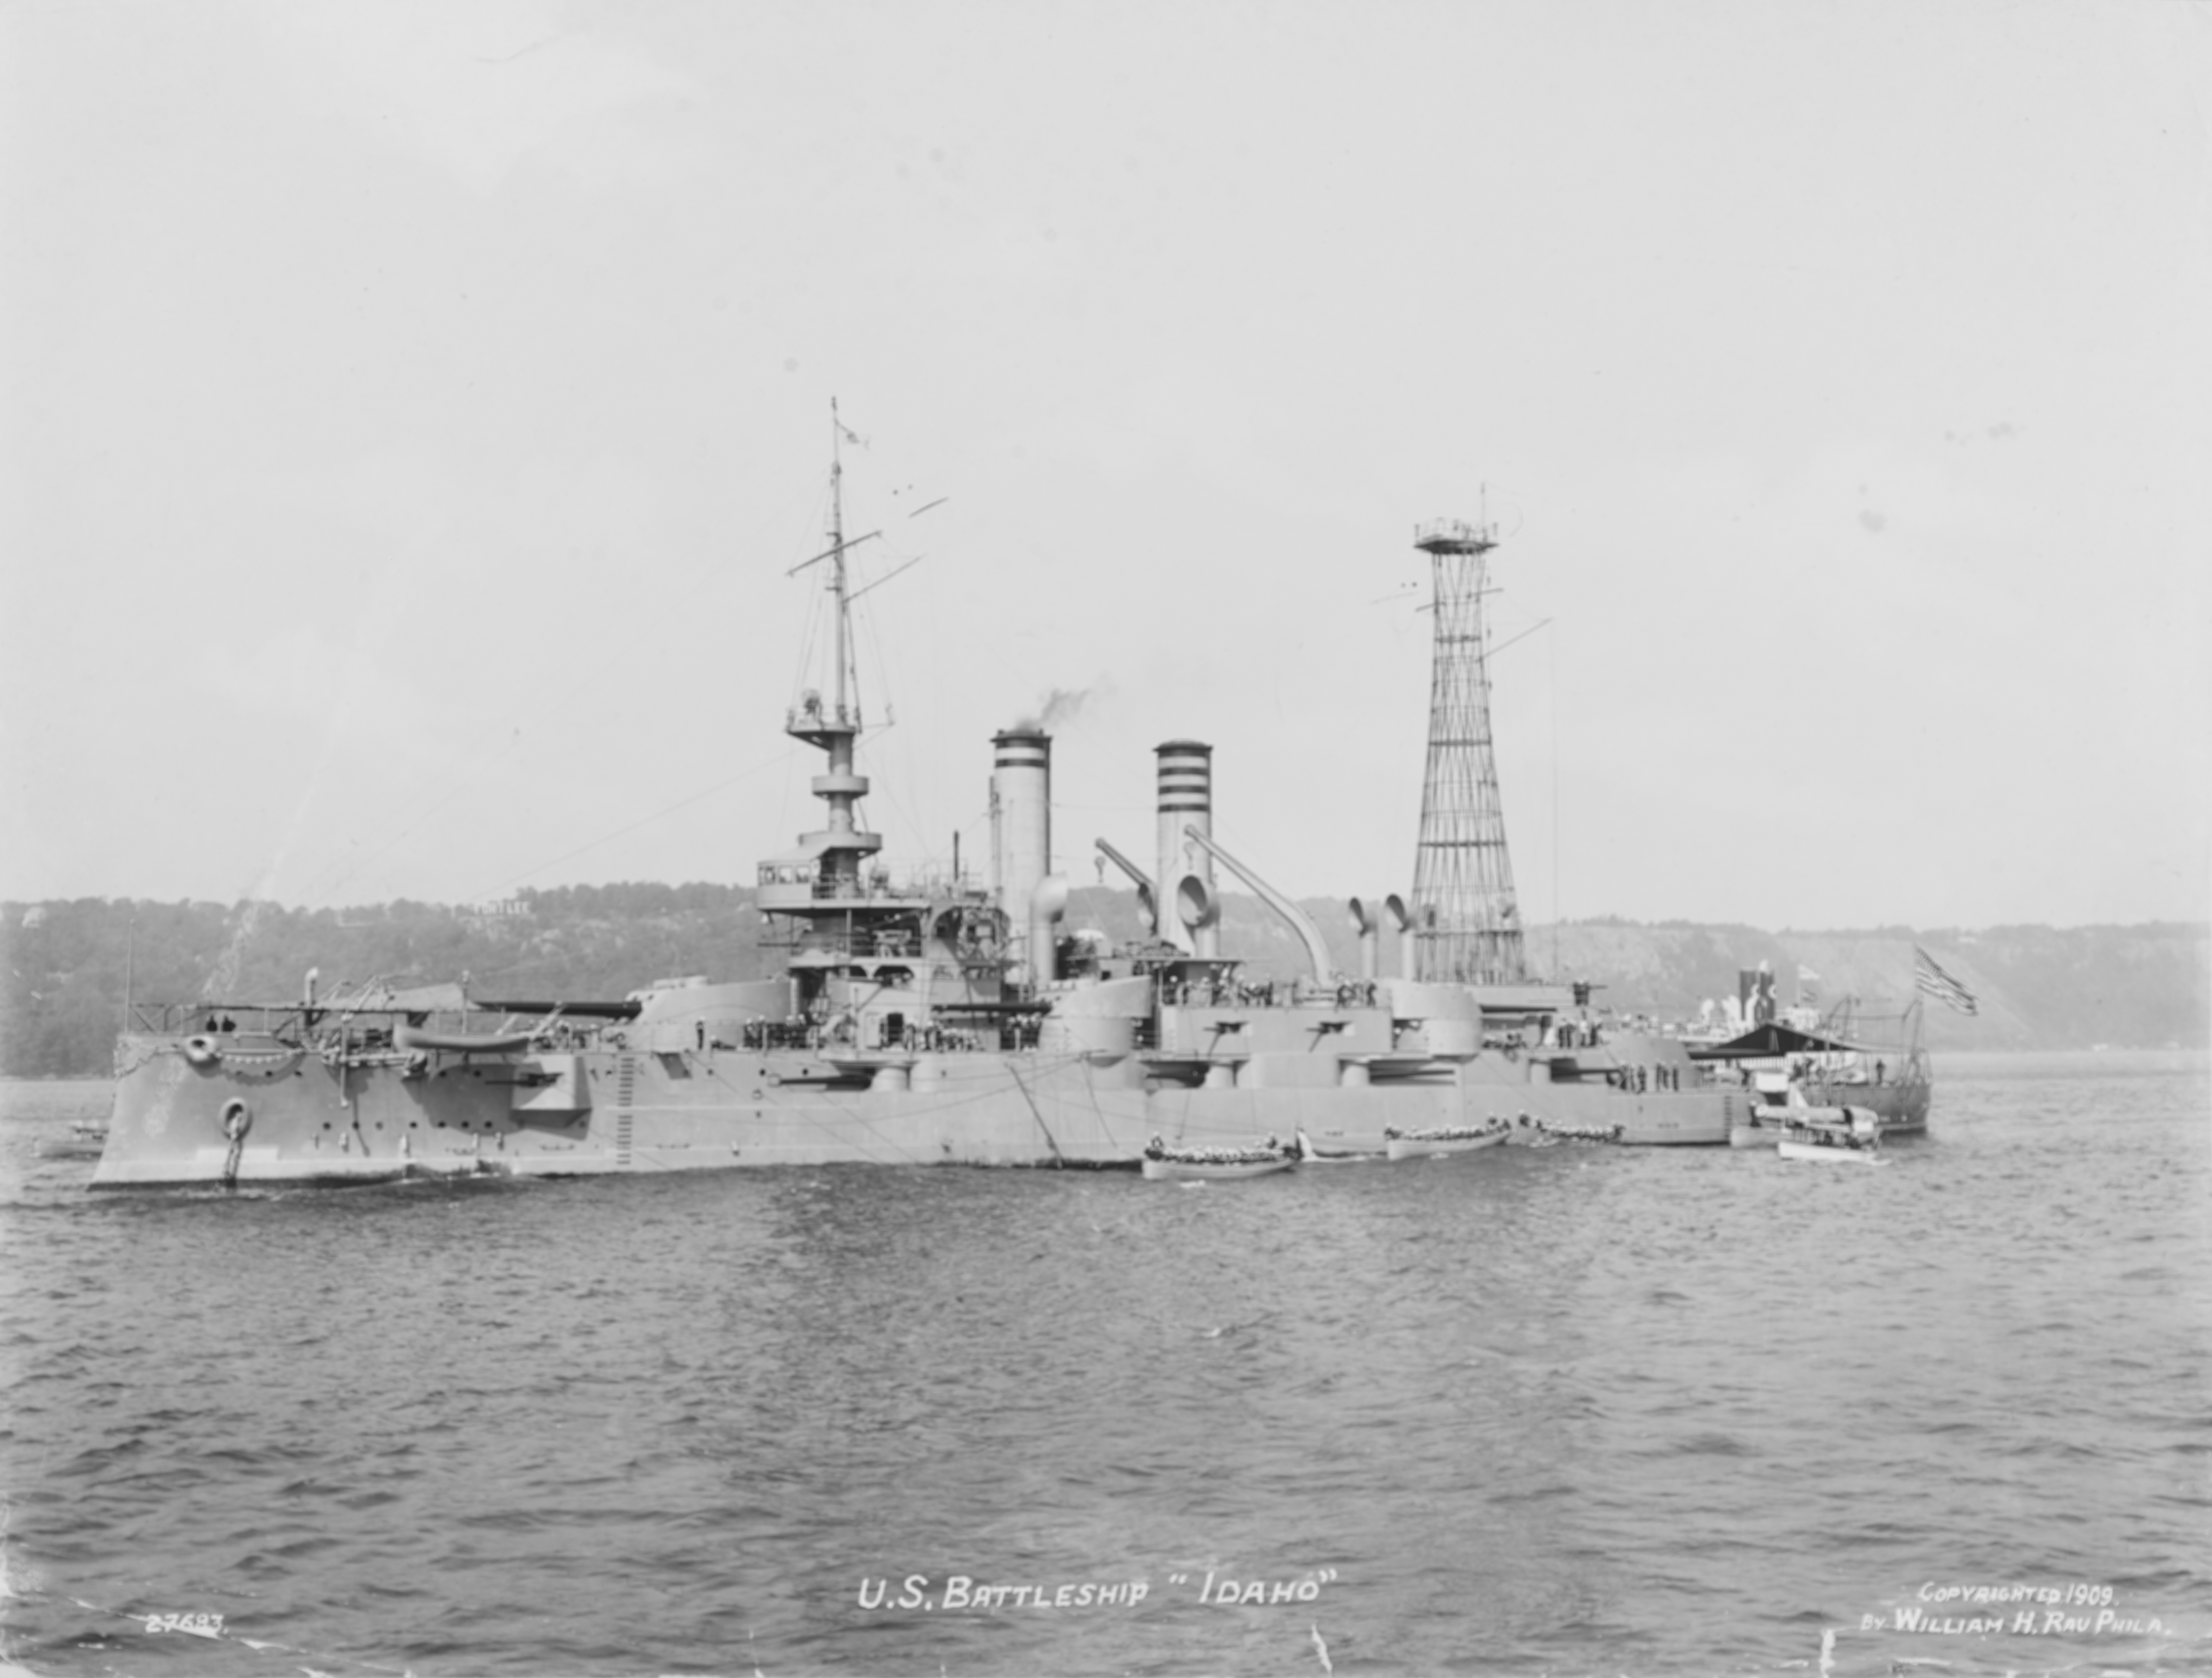 USS Idaho on the Hudson River, while in USN service